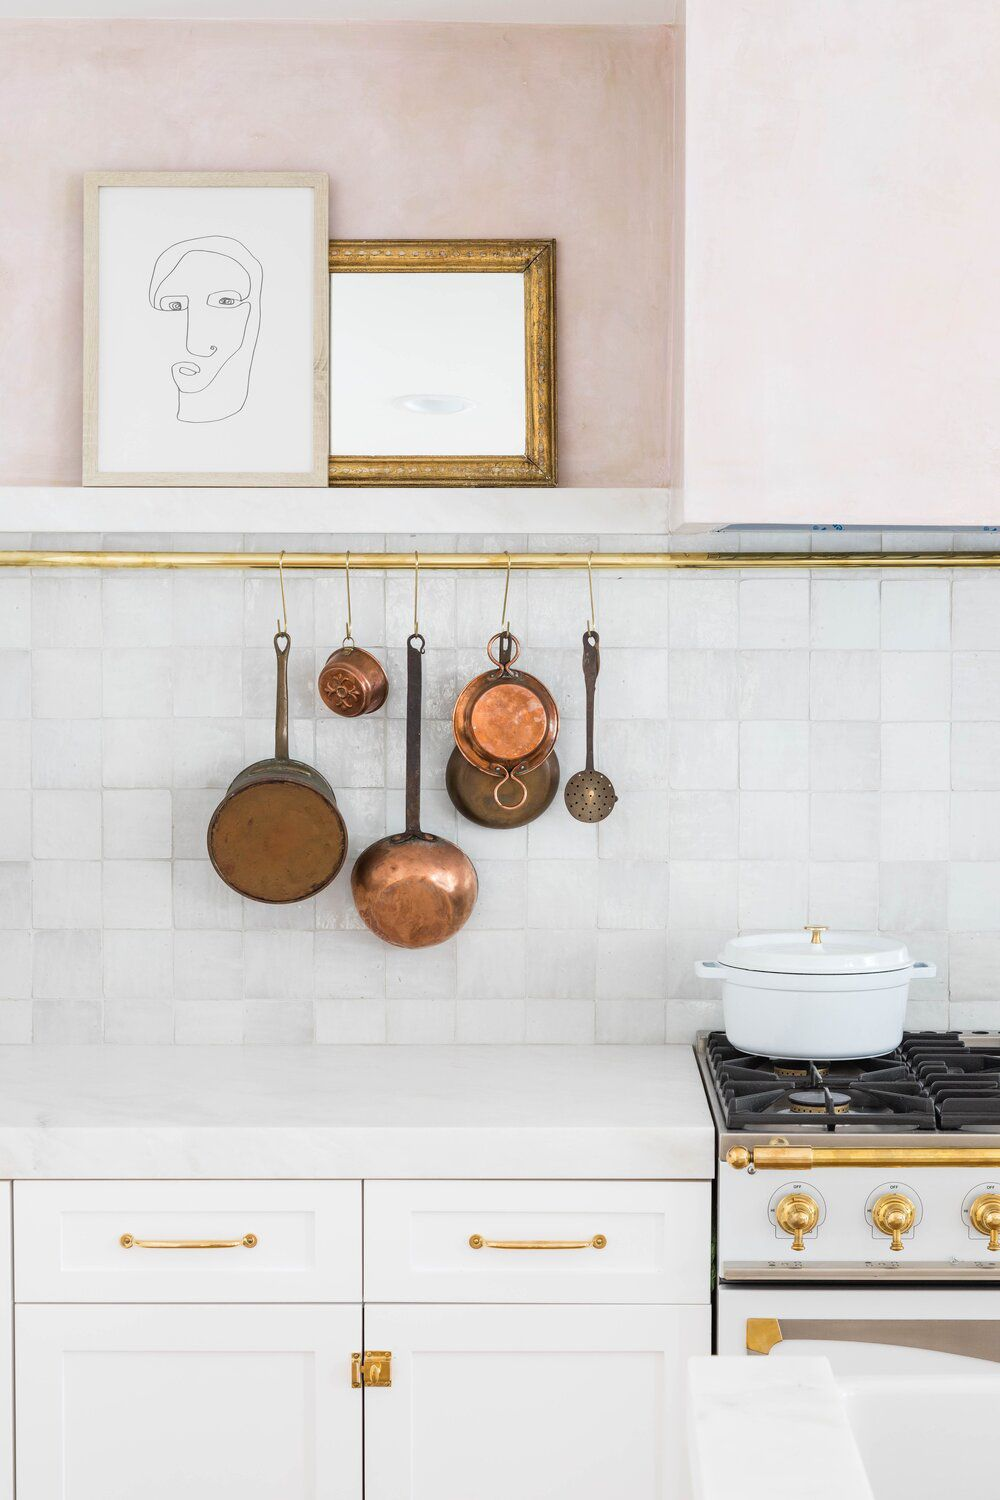 A two-tone backsplash that's lined with white tiles on the bottom and covered in pink paint on the top